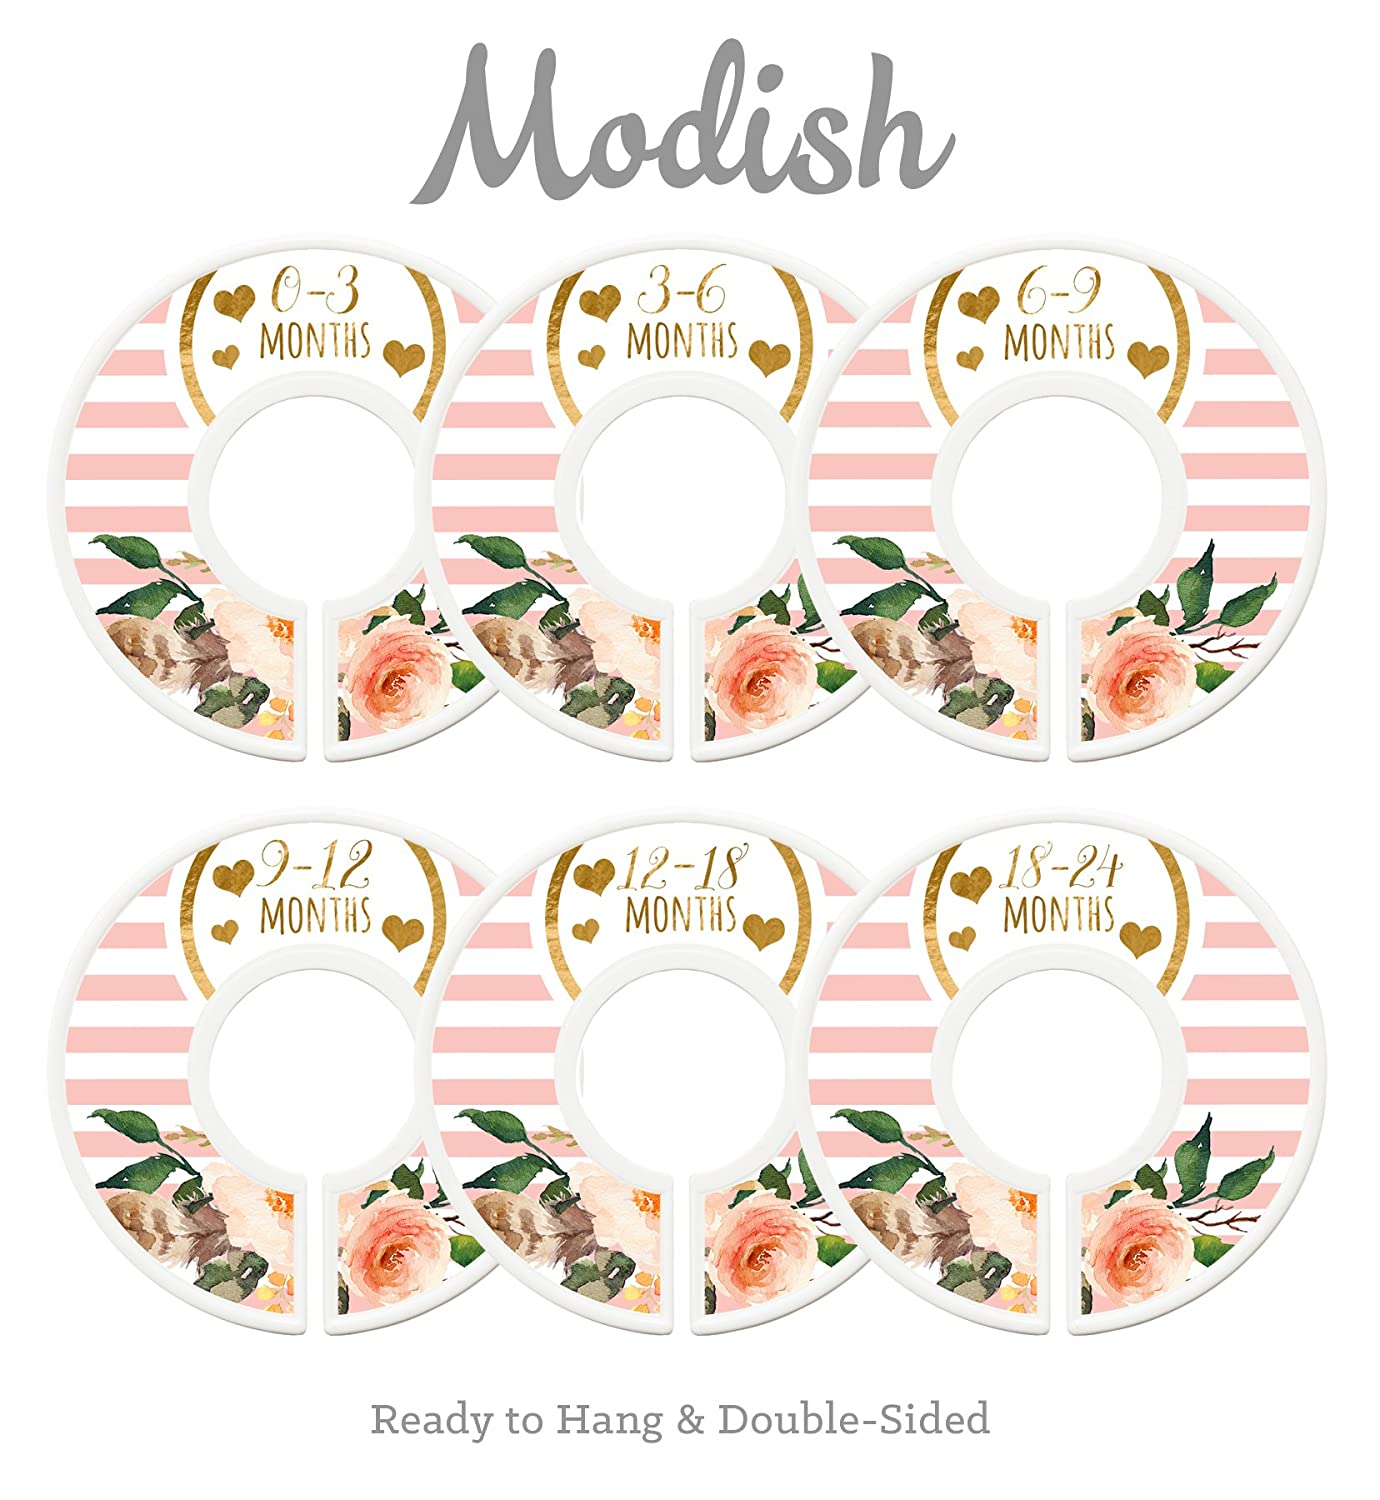 Modish Labels Baby Nursery Closet Dividers, Closet Organizers, Nursery Decor, Baby Girl, Hearts, Flowers, Pink, Stripes Inc. 687847980322